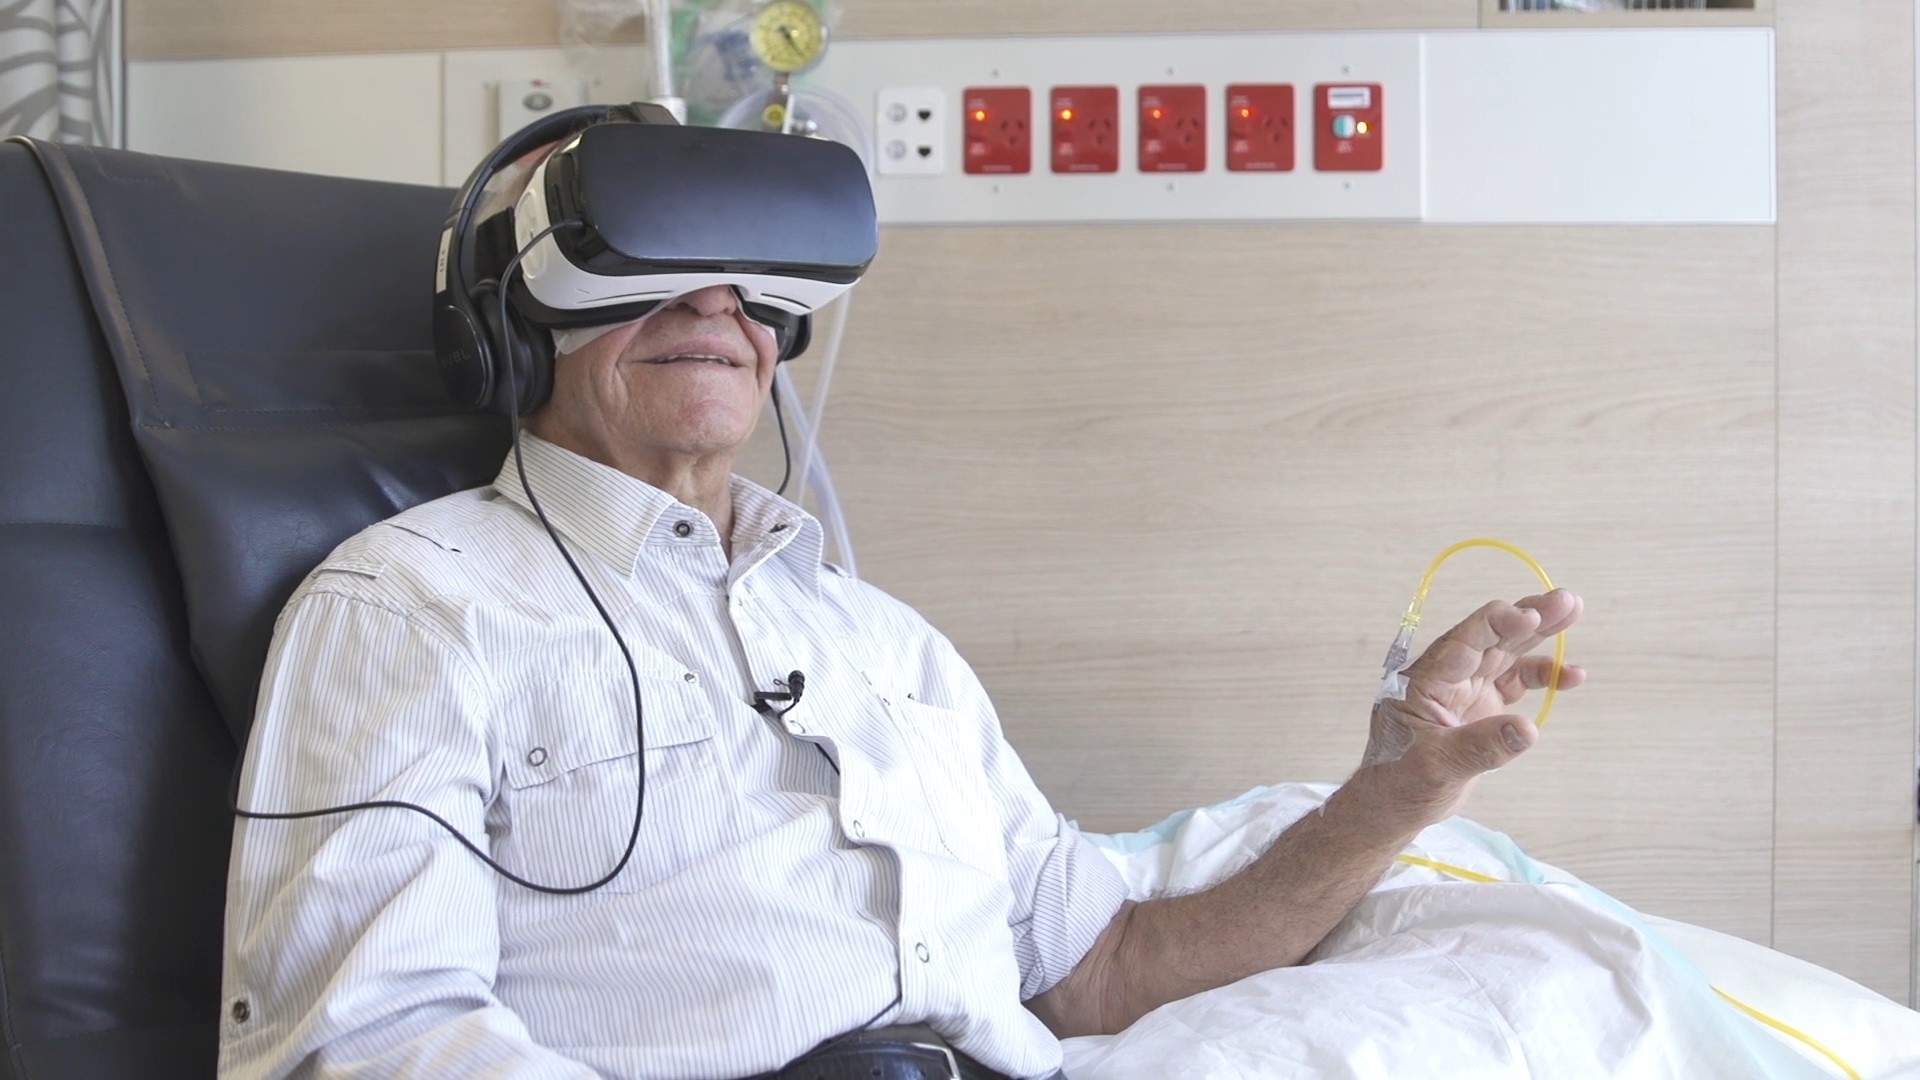 Samsung and Start VR are using virtual reality to help chemotherapy patients